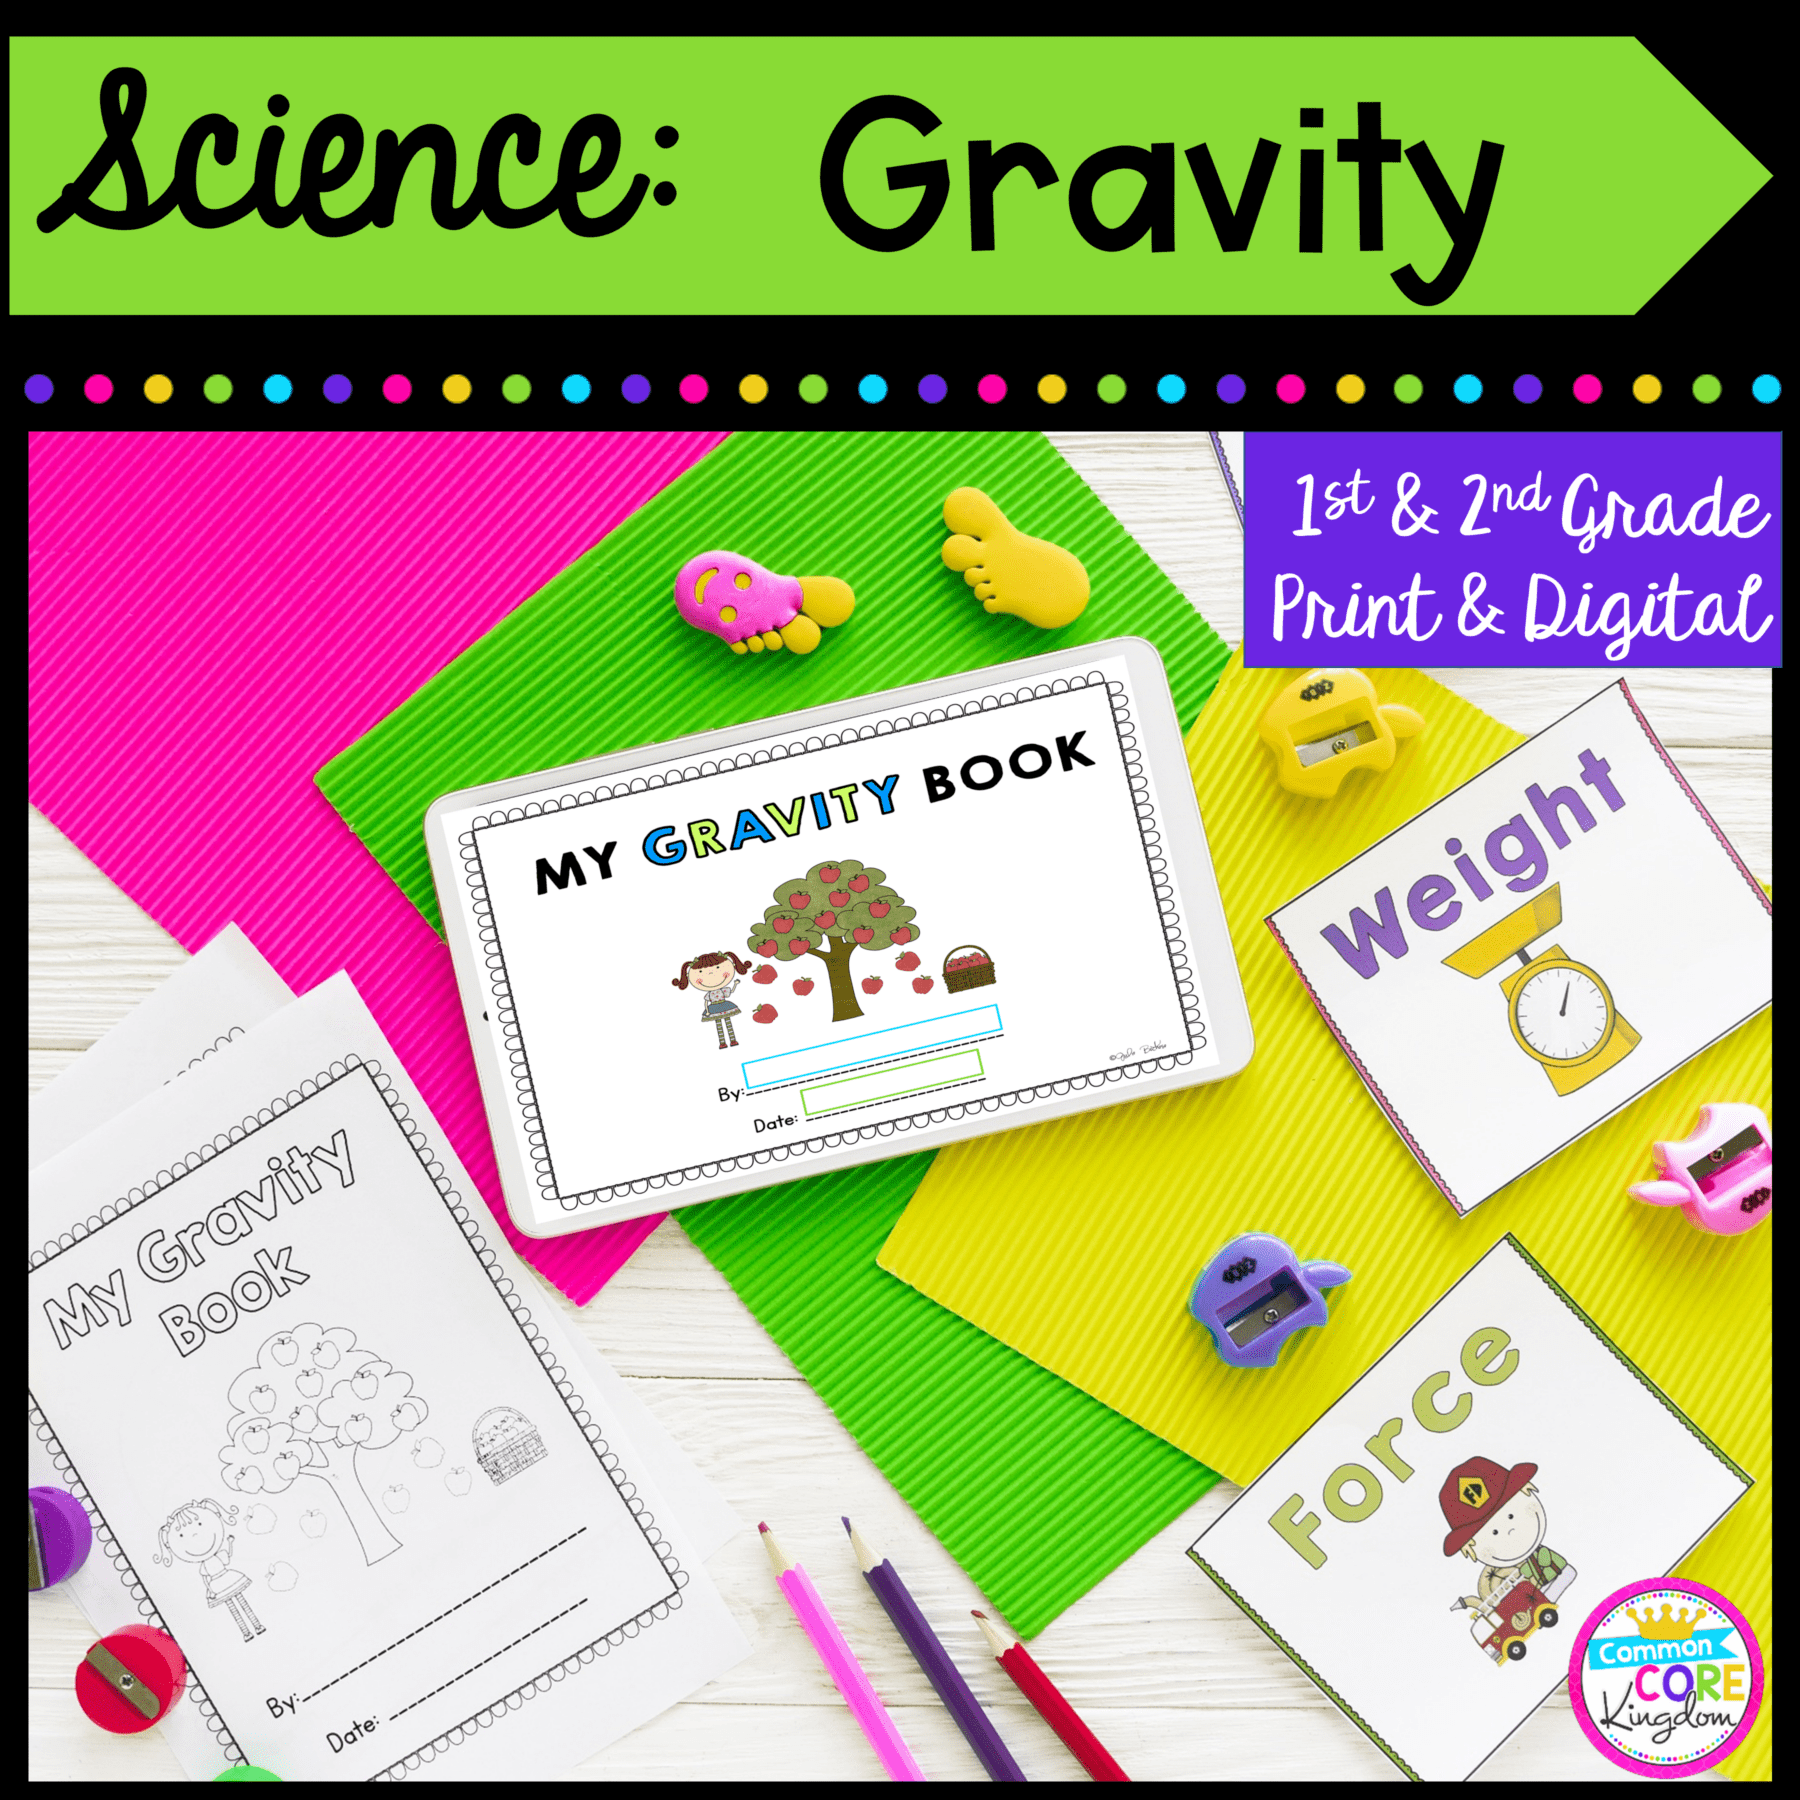 hight resolution of Gravity Mini Unit- 1st \u0026 2nd Grade - Printable \u0026 Digital   Common Core  Kingdom